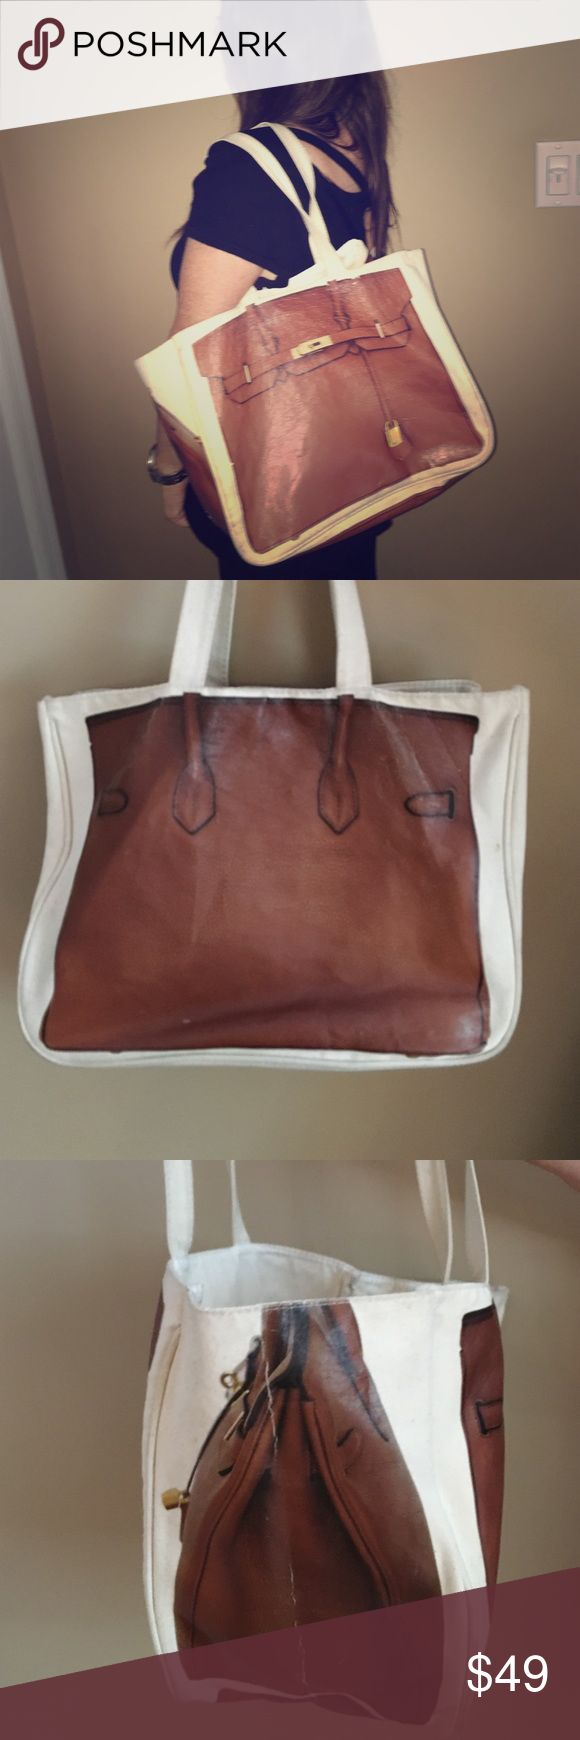 Thursday Friday Canvas Birkin pictured tote bag Fun canvas tote bag for everyday.  Or use it for an extra bag to carry all your things. If you always wanted a Birken bag now you can have one.  Such a practical trendy bag. Thursday Friday Bags Totes